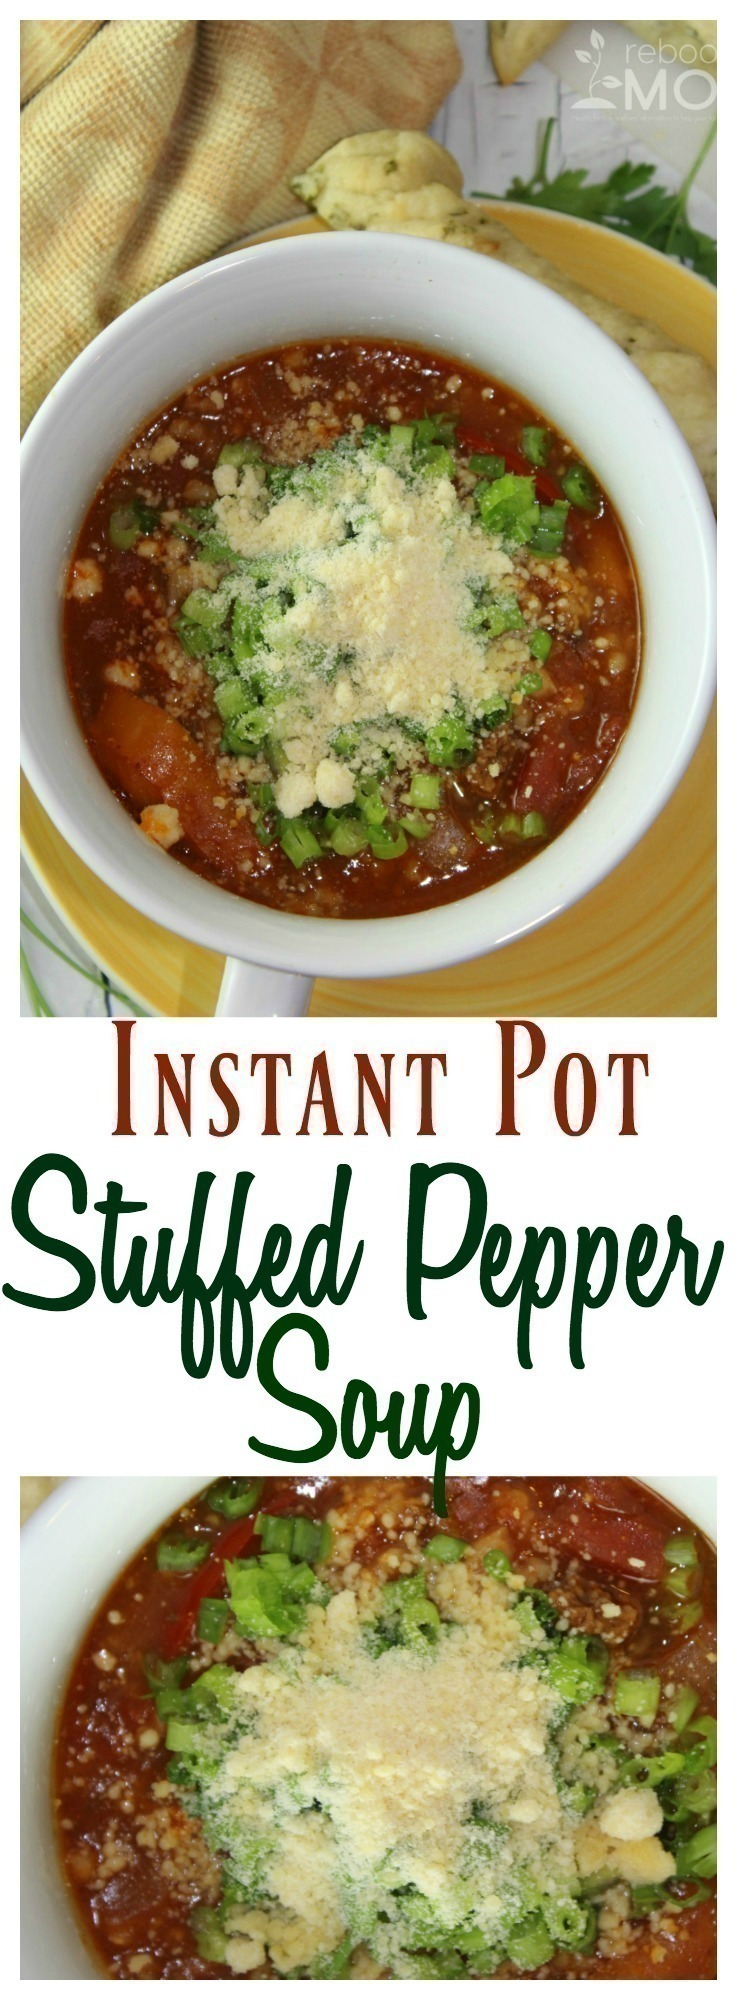 This One Pot Stuffed Pepper Soup in the Instant Pot is a quick one-pot meal that you can whip up in 30 minutes or less!